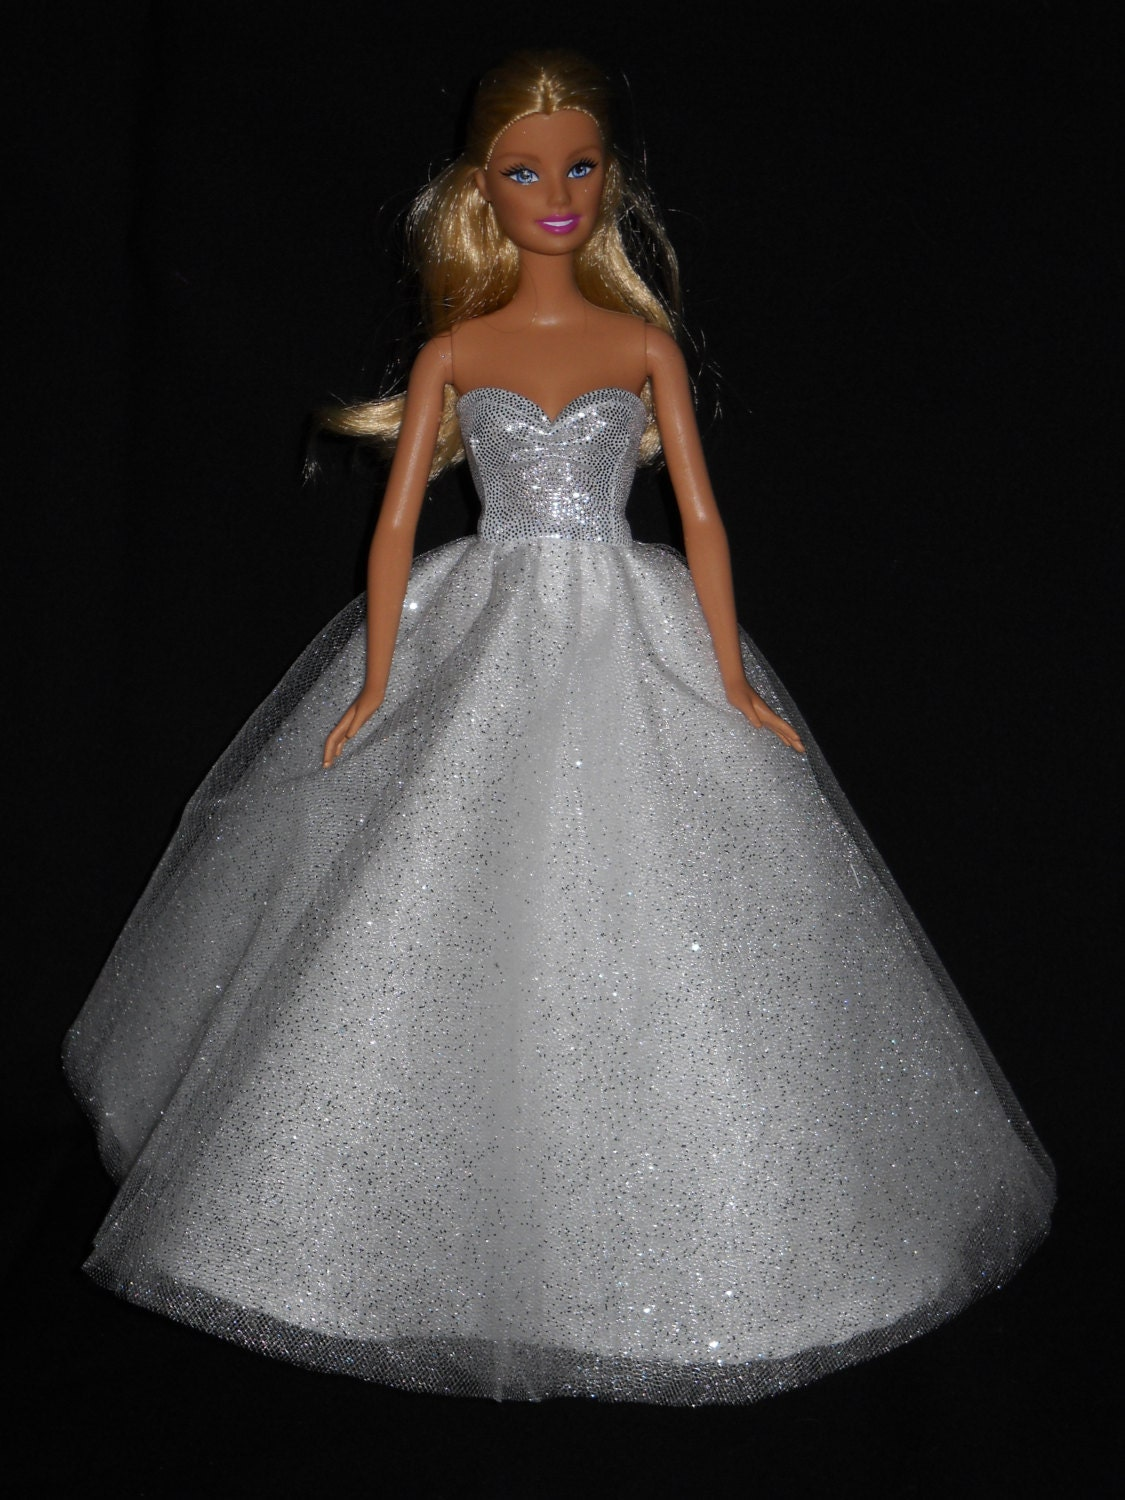 Barbie Doll Dress Handmade Silver and Sparkly White Ball Gown